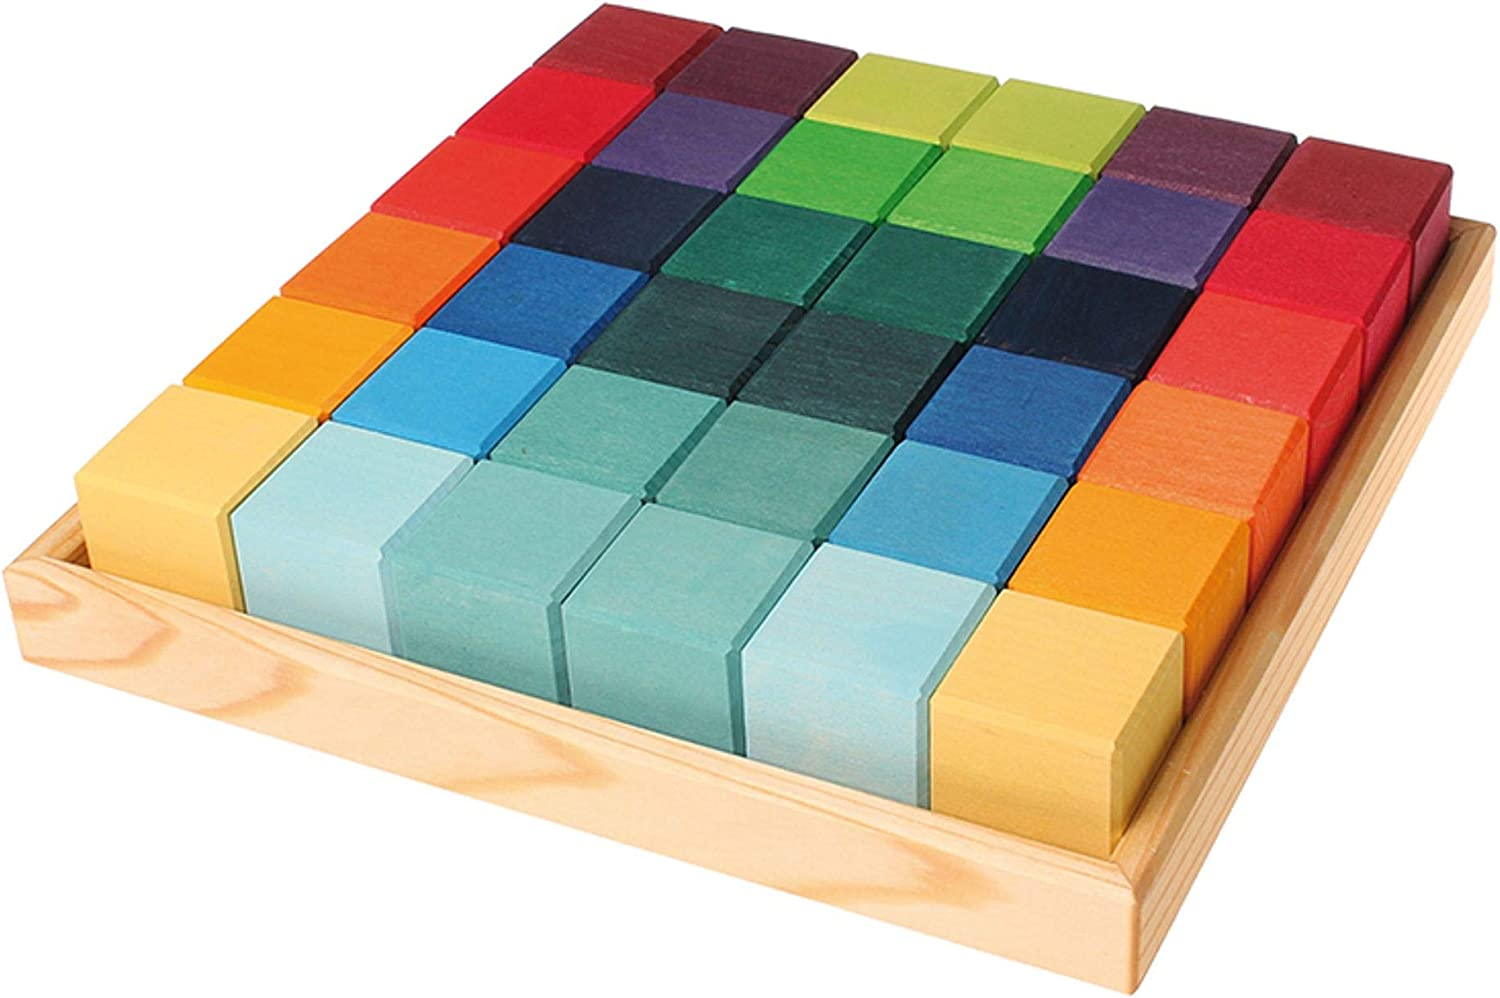 Grimm's 70% OFF Outlet Mosaic Square of 36 Wooden Cube Storage low-pricing Tray Blocks with